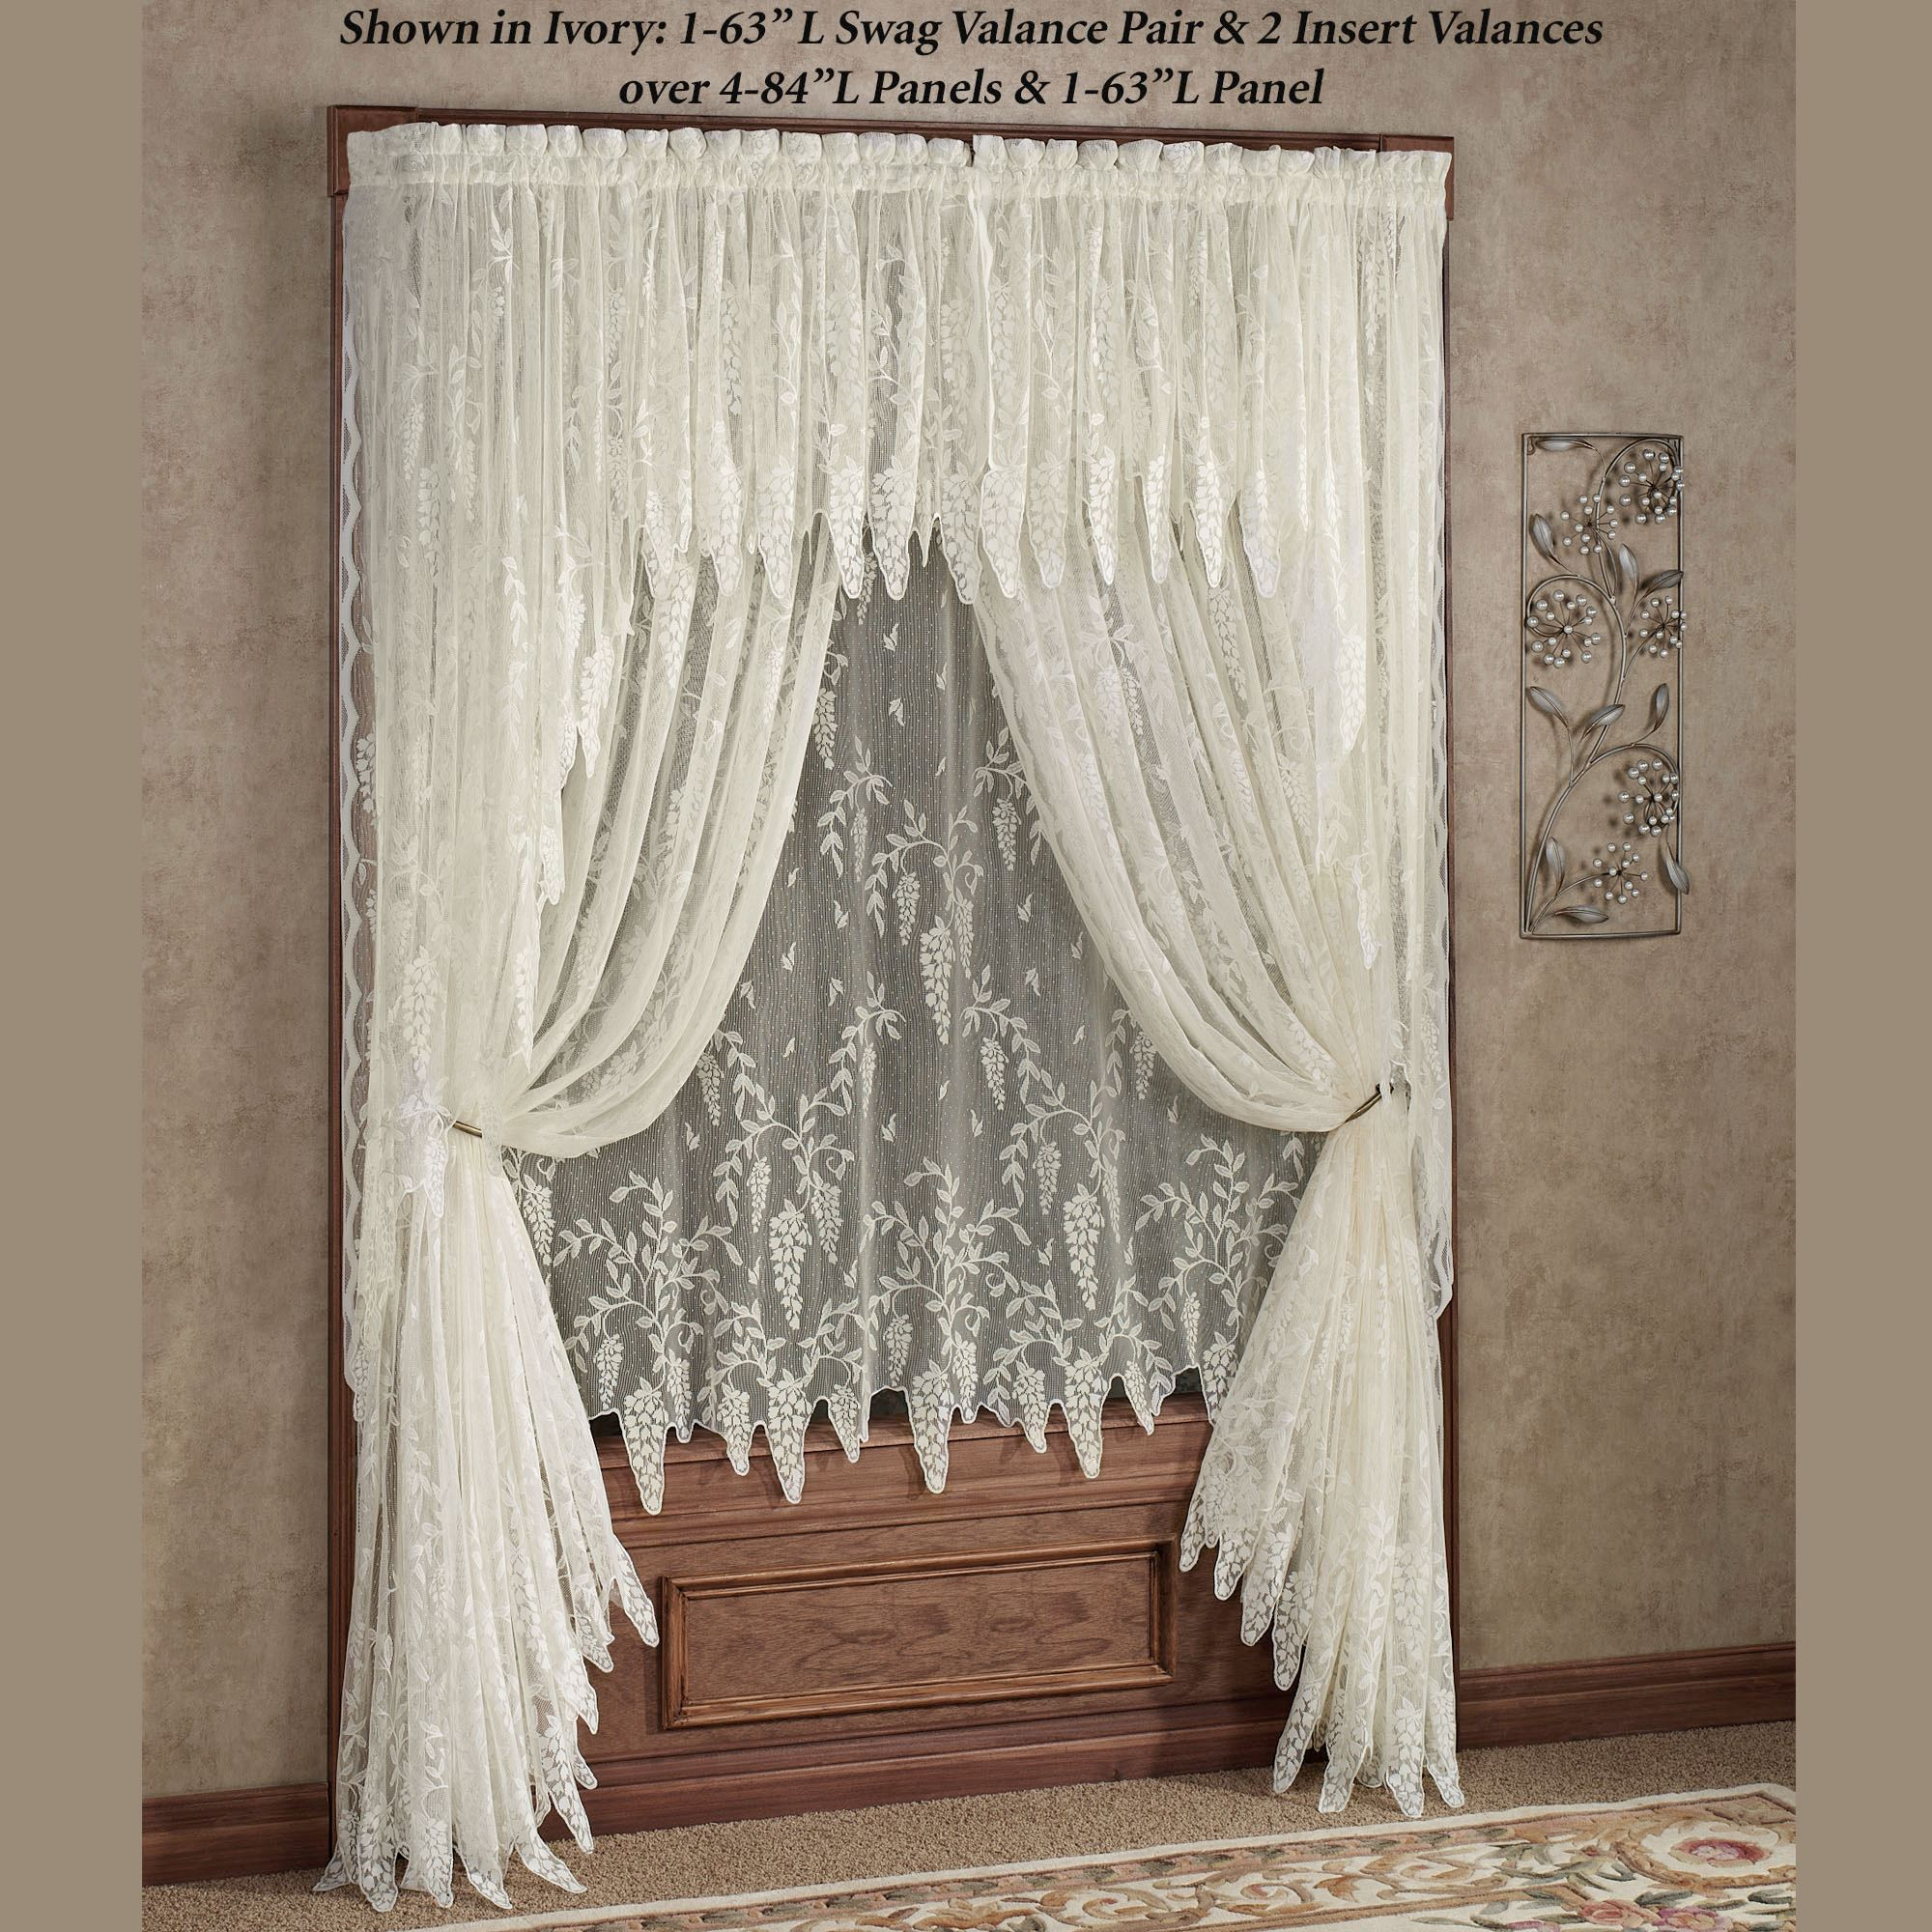 Wisteria Arbor Lace Window Treatments